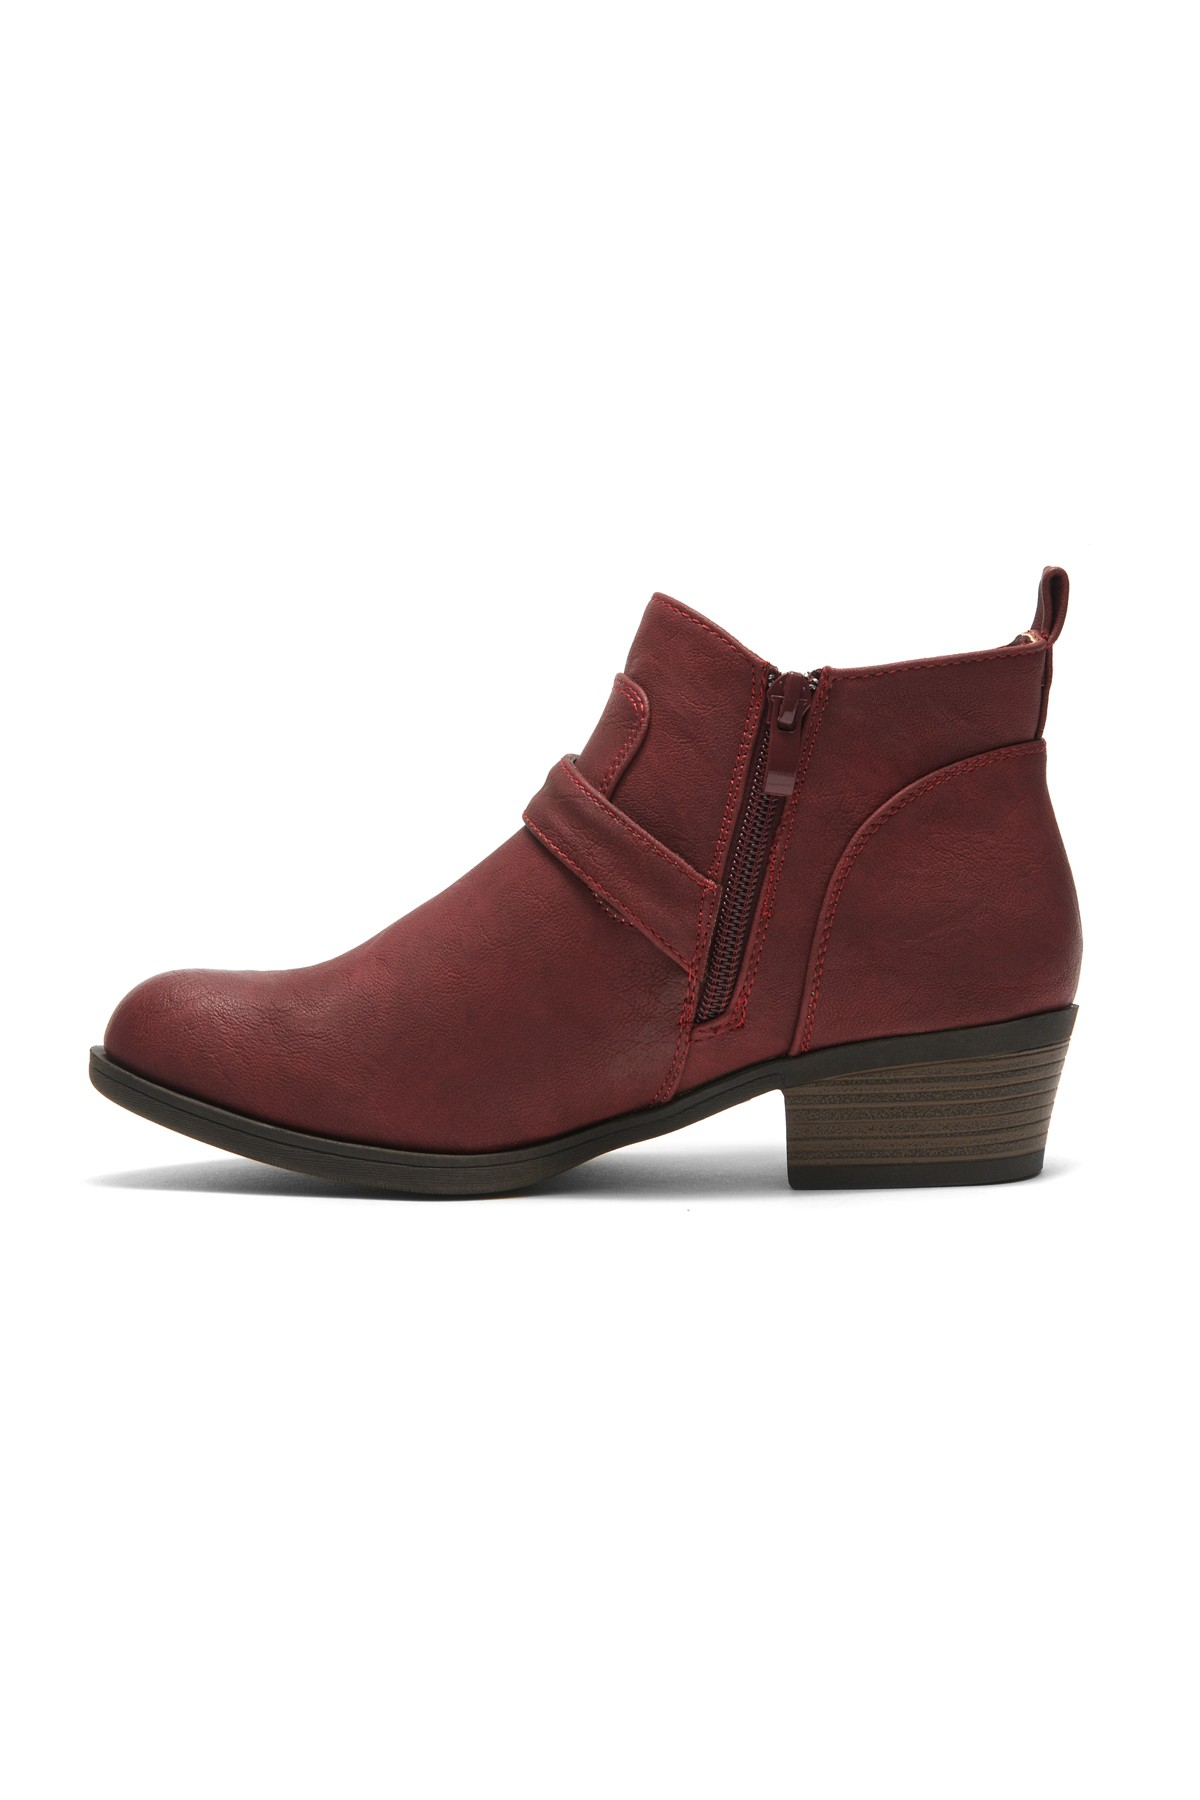 c33542ca3932a Women's Burgundy Raavver Basel Boot. Fashionable Stacked Heels, Buckle  strapped. Western Ankle Boot. Cowgirl Low Heel Closed Toe Casual Bootie, ...